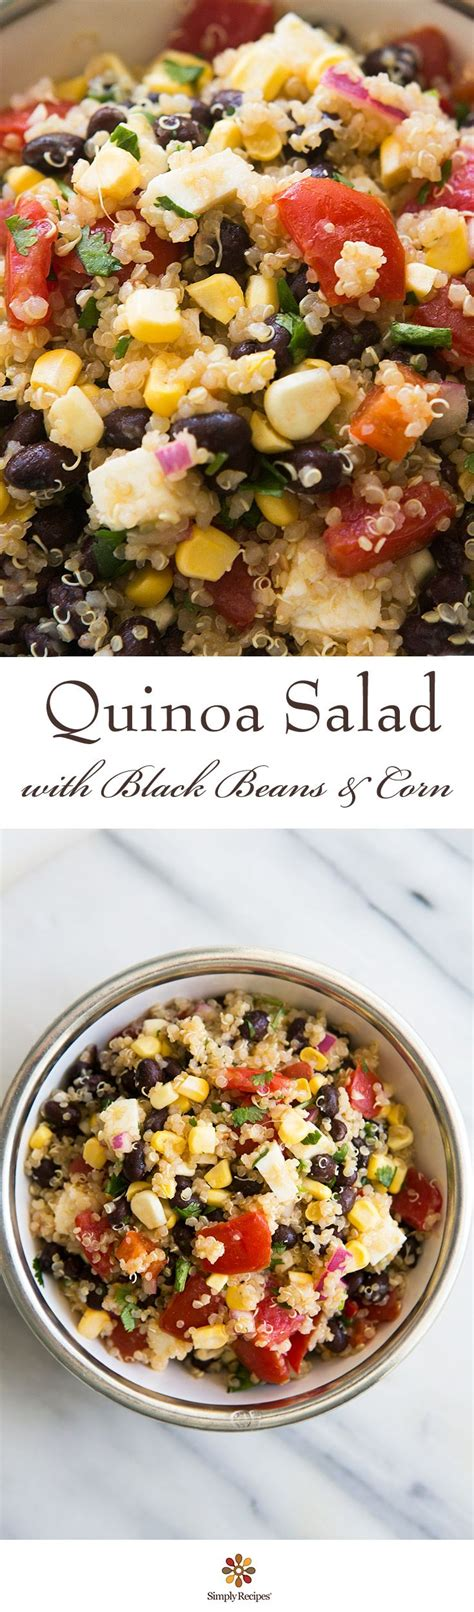 mexican quinoa salad with black beans and shape magazine 17 best ideas about lunch menu on pinterest food for